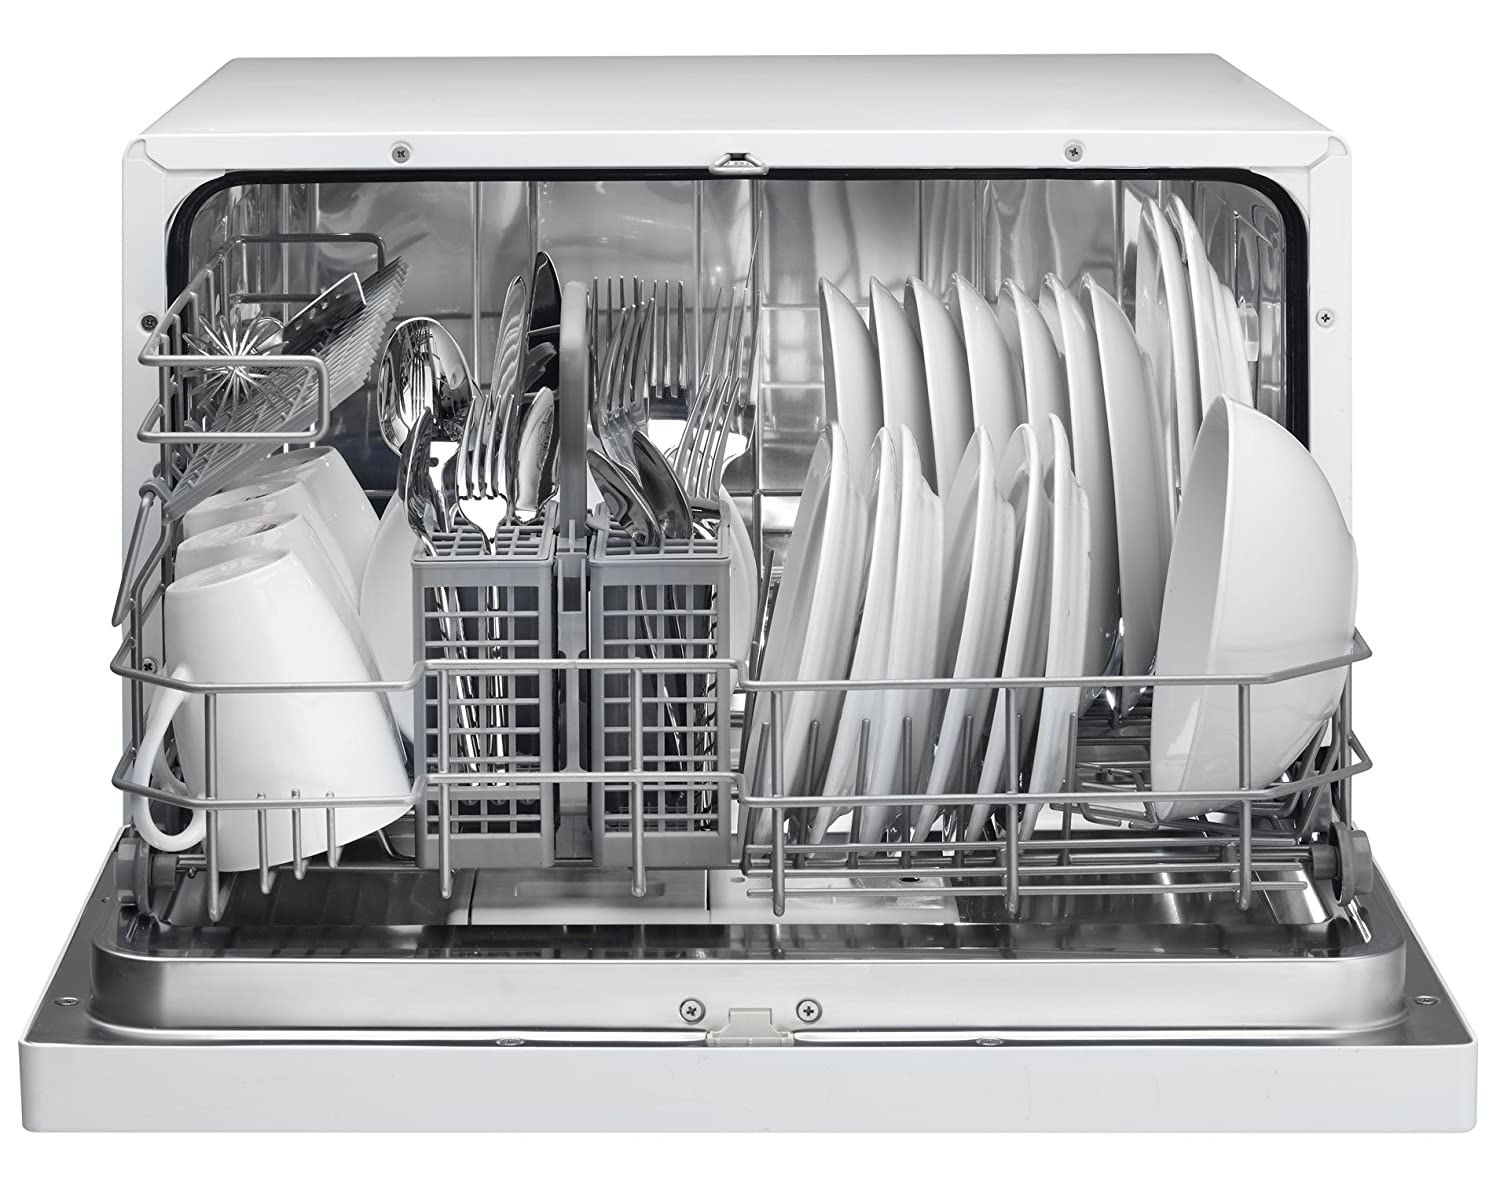 10 Best Dishwashers in 2017 -Top Rated Dishwashers 10 Best Buy ...